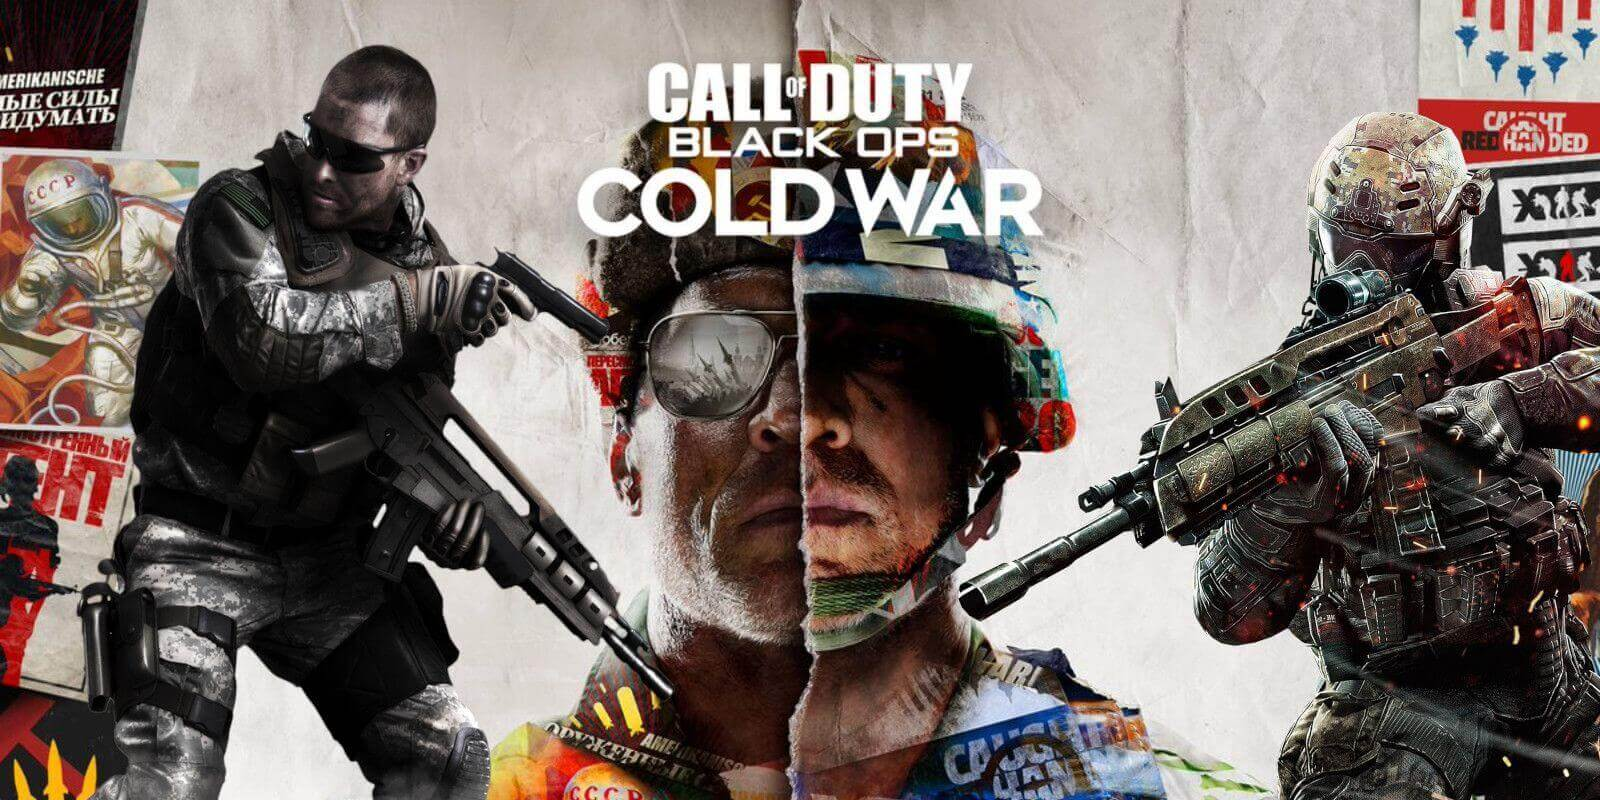 call-of-duty-black-ops-cold-war:-new-weapon-has-been-added-to-the-zombie-mode